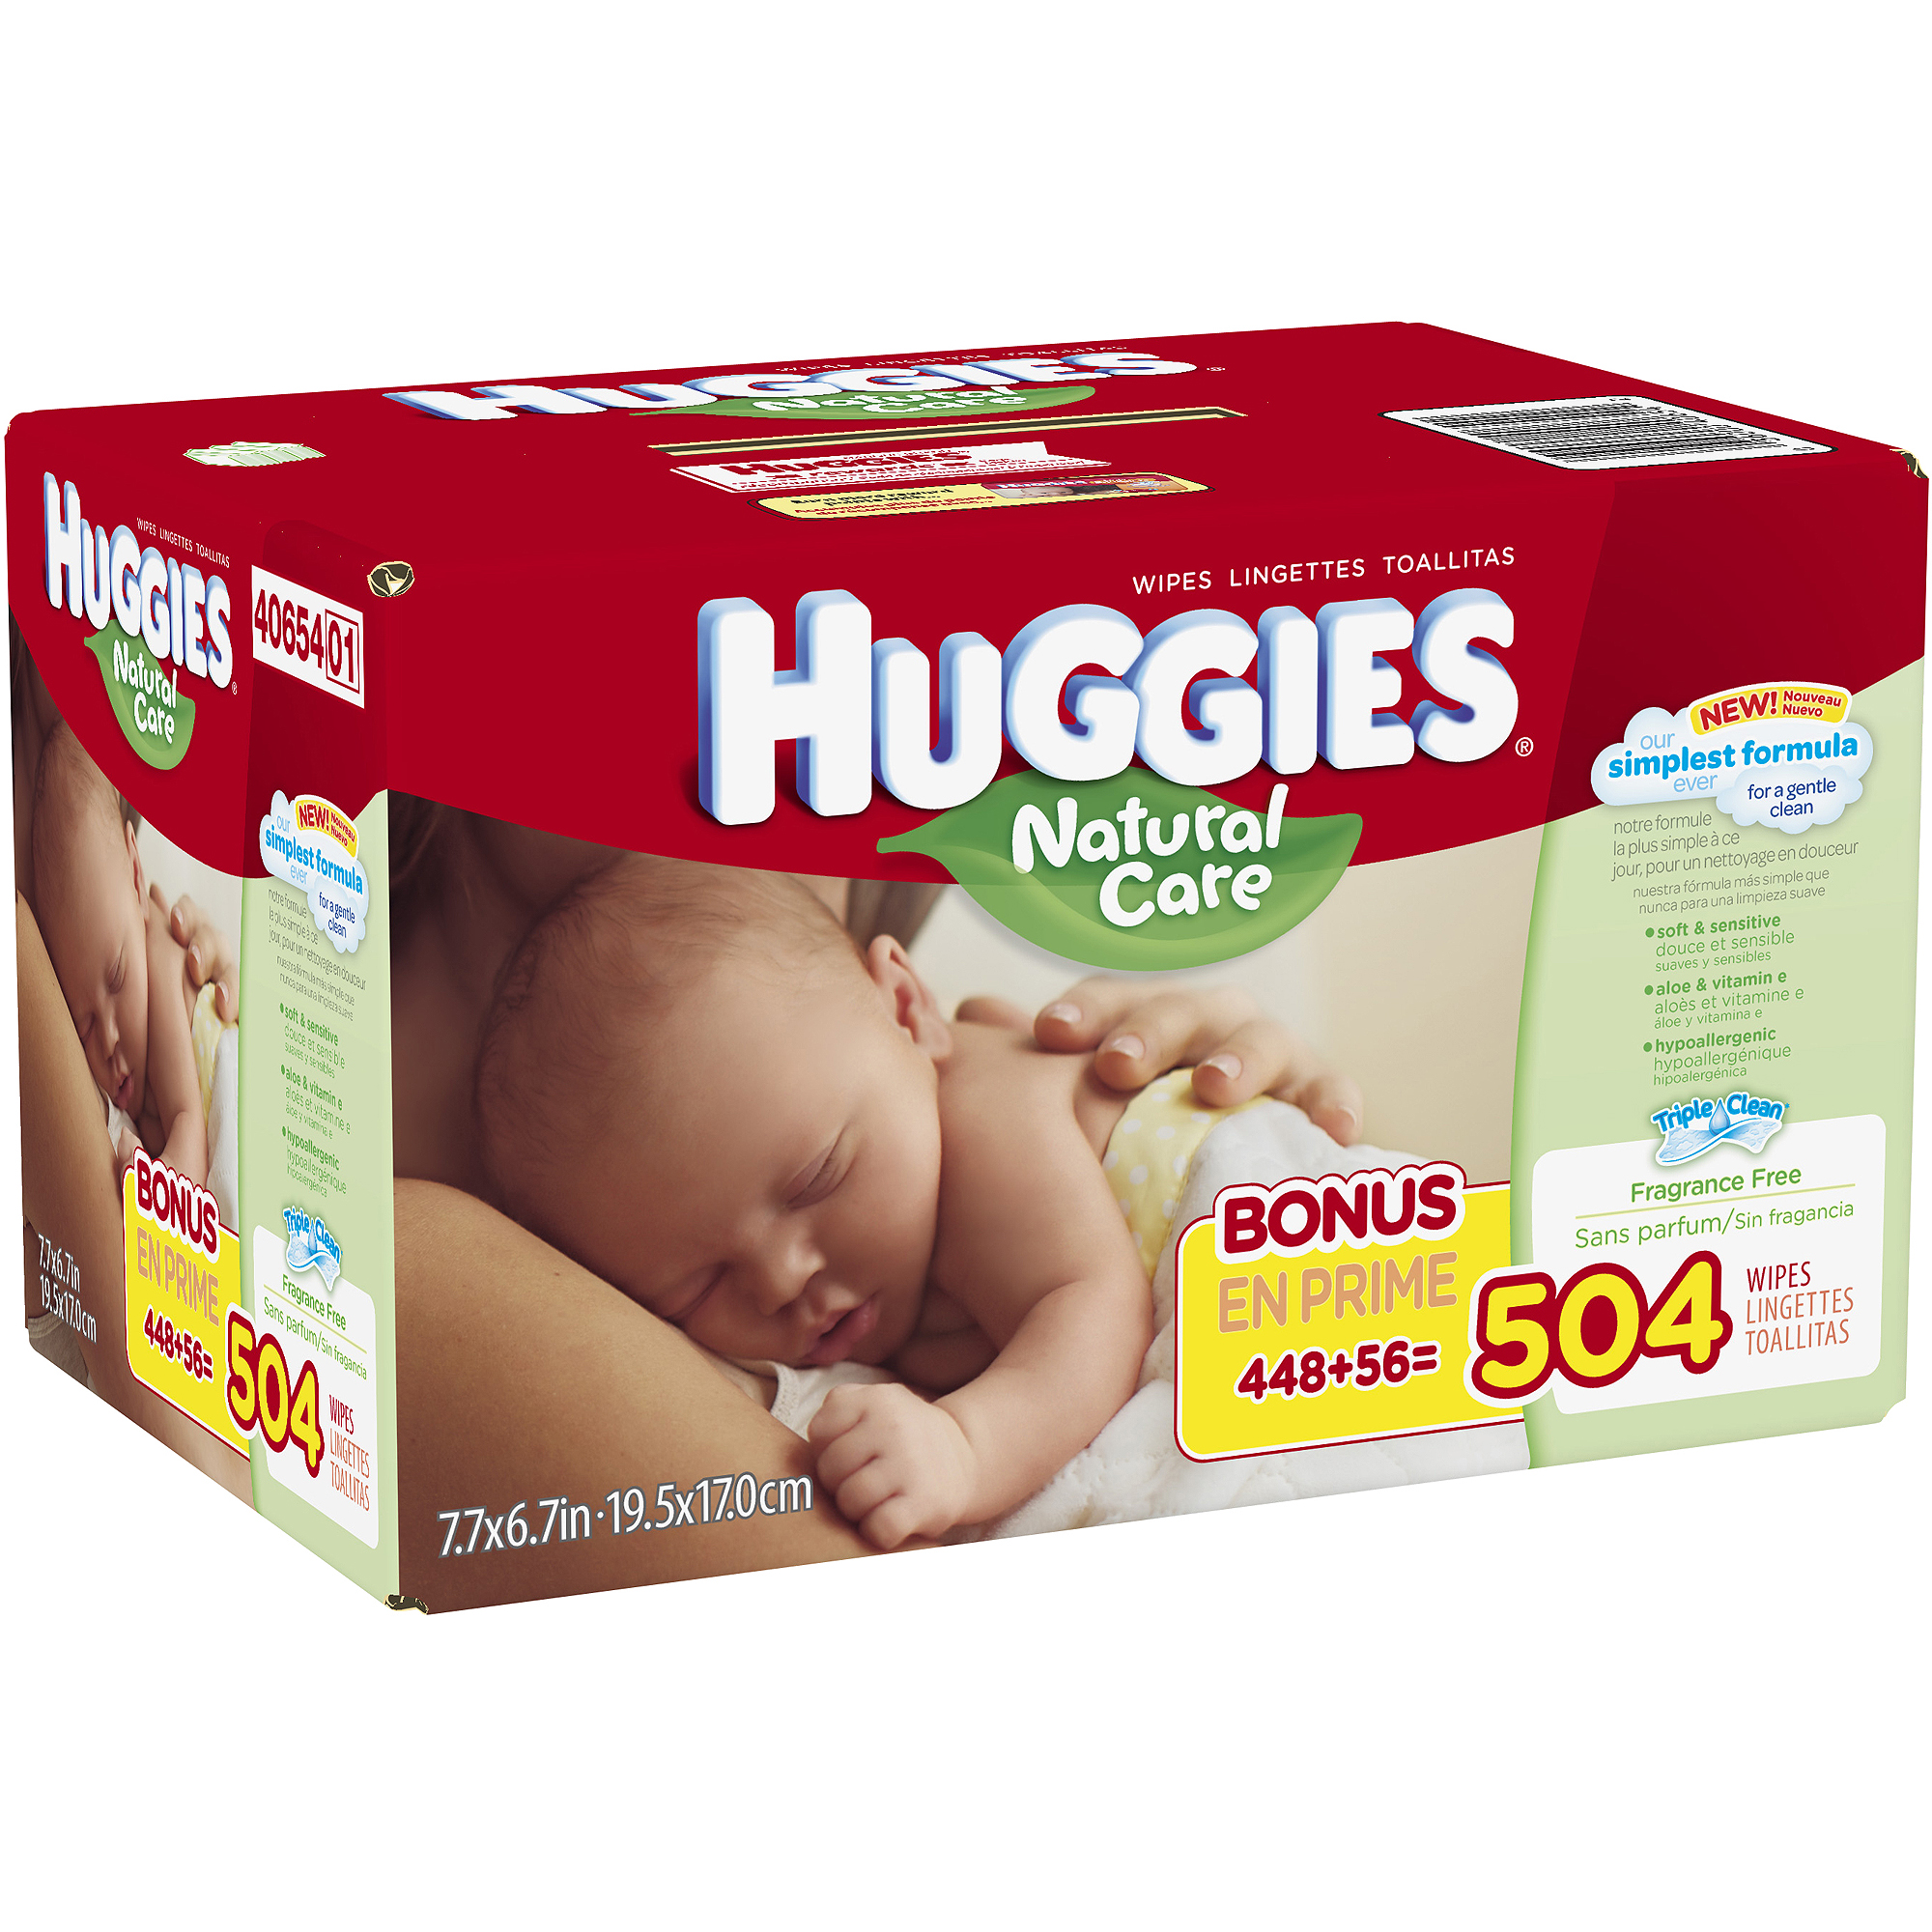 HUGGIES Natural Care Baby Wipes Refill, 504 sheets